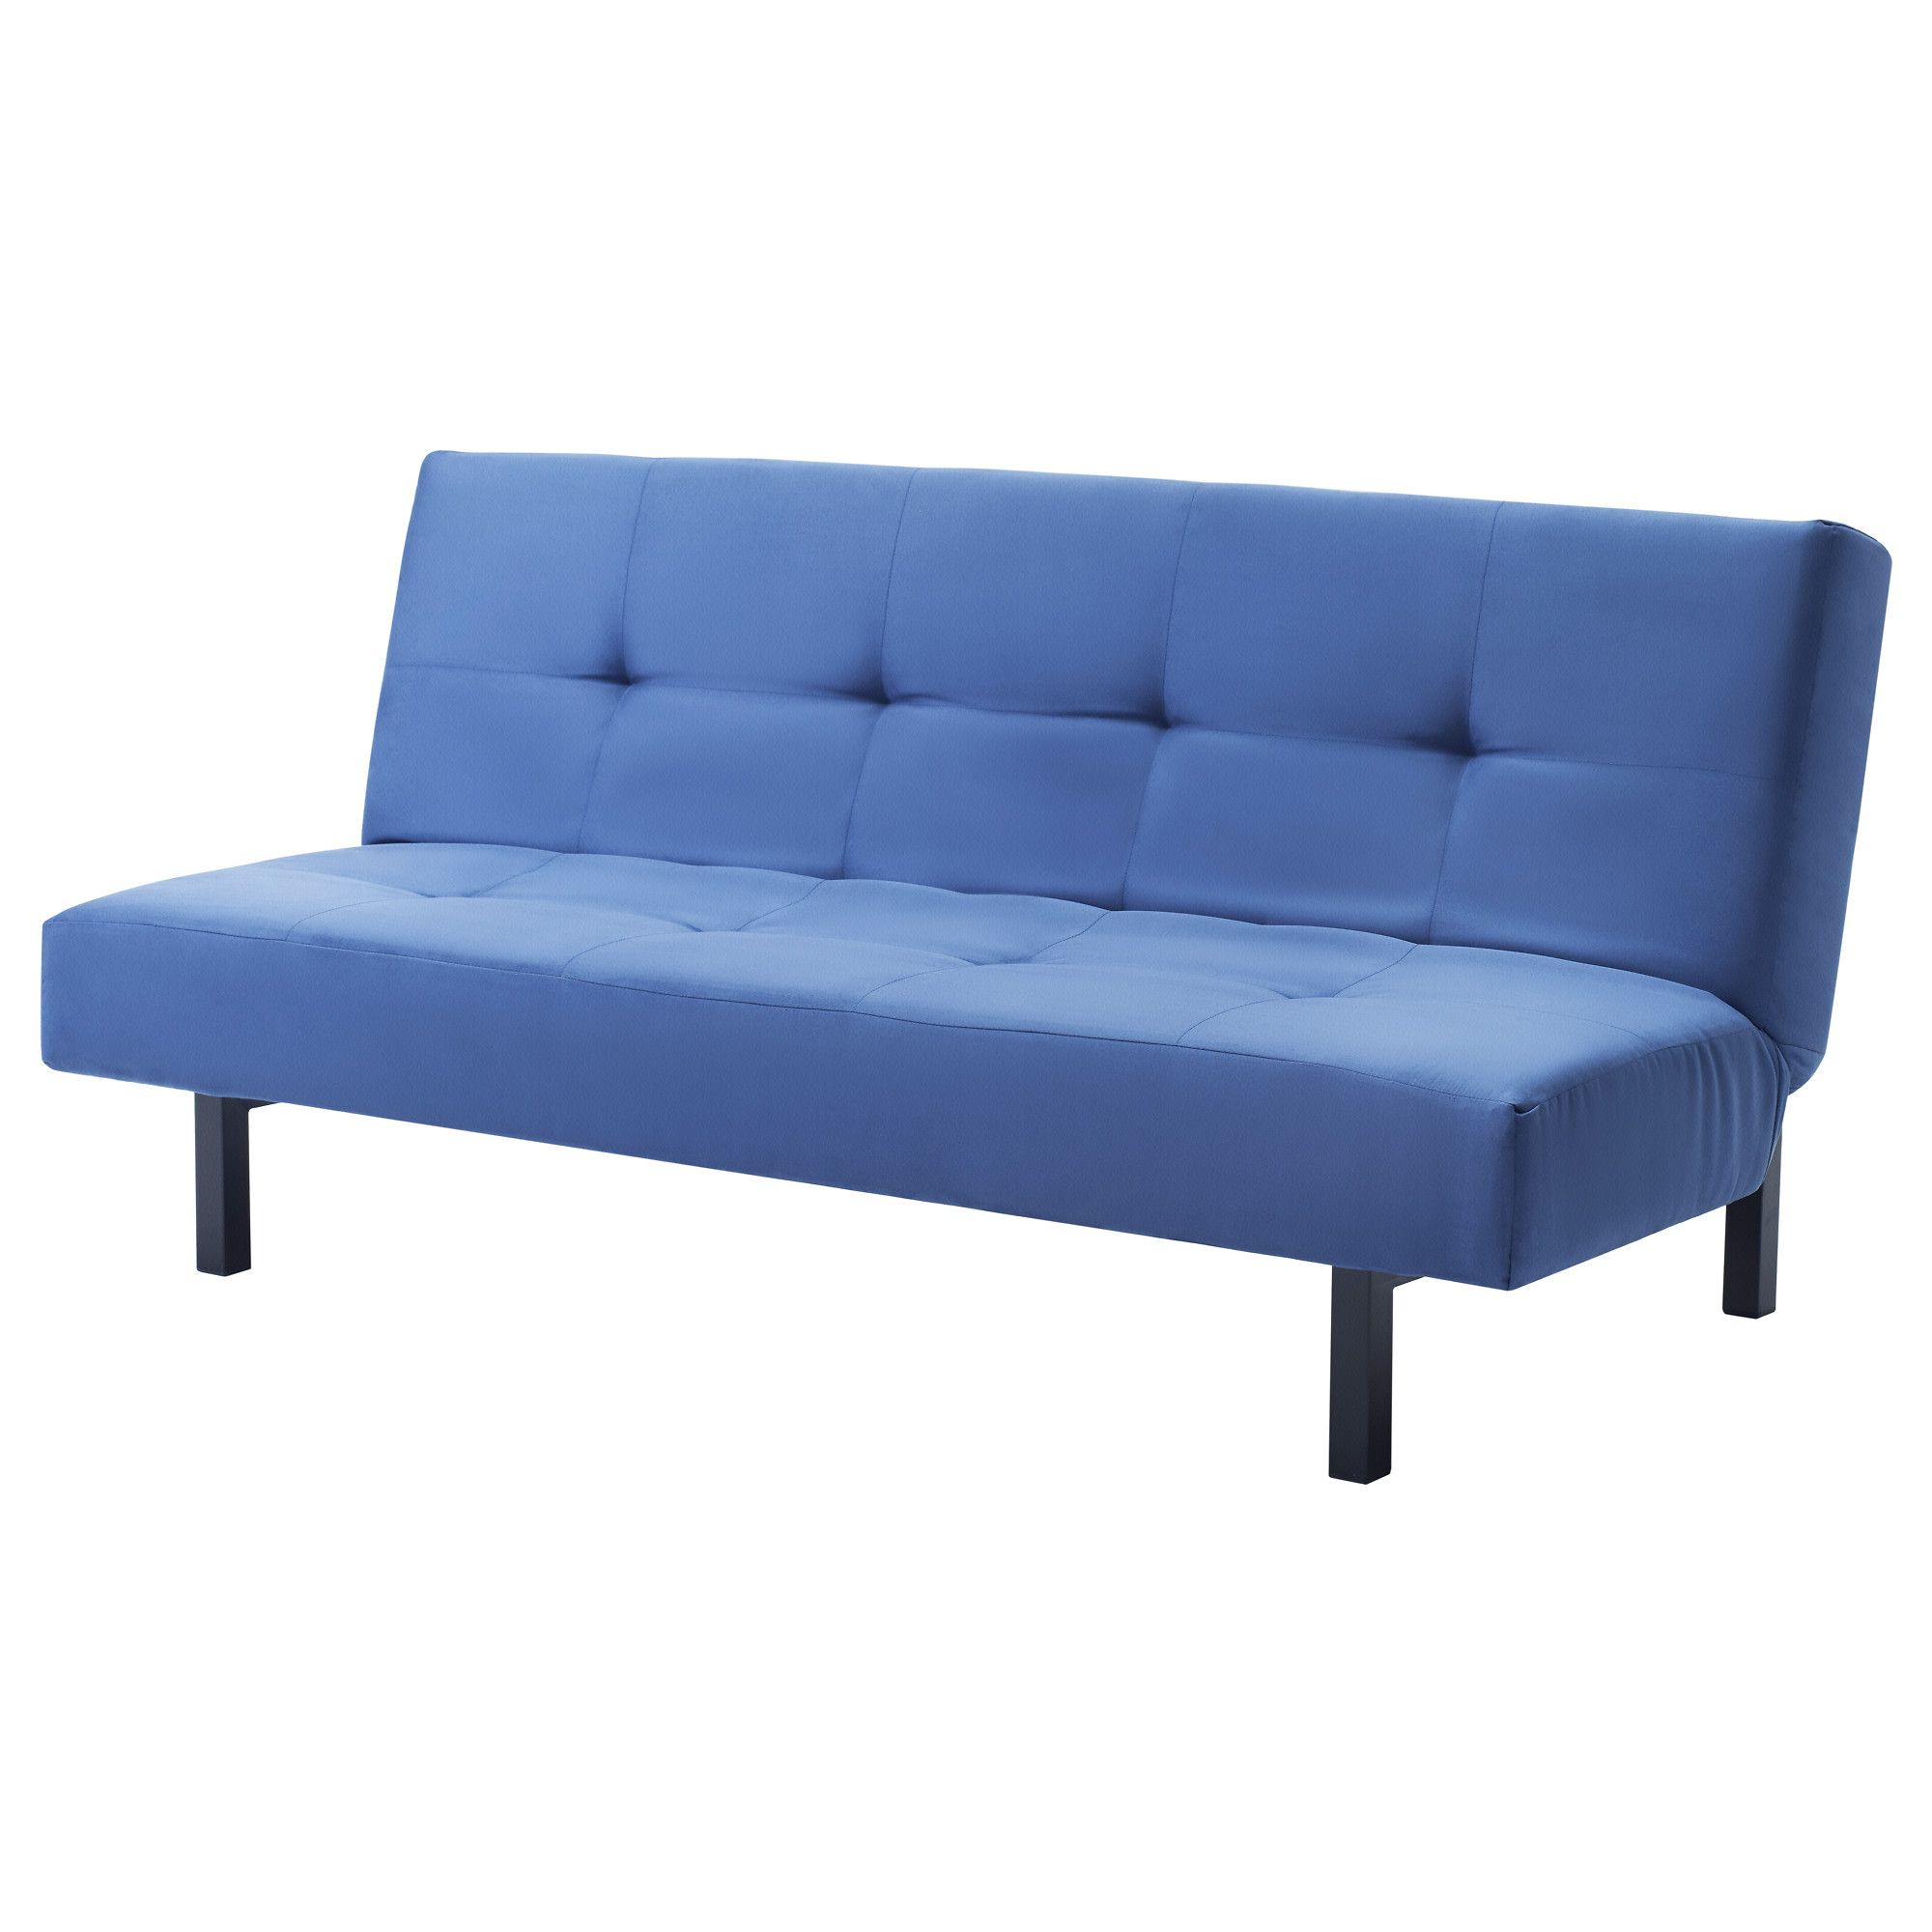 Futonsessel Ikea Ottoman That Turns Into A Chair Stühle Futon Sofa Bed Ikea